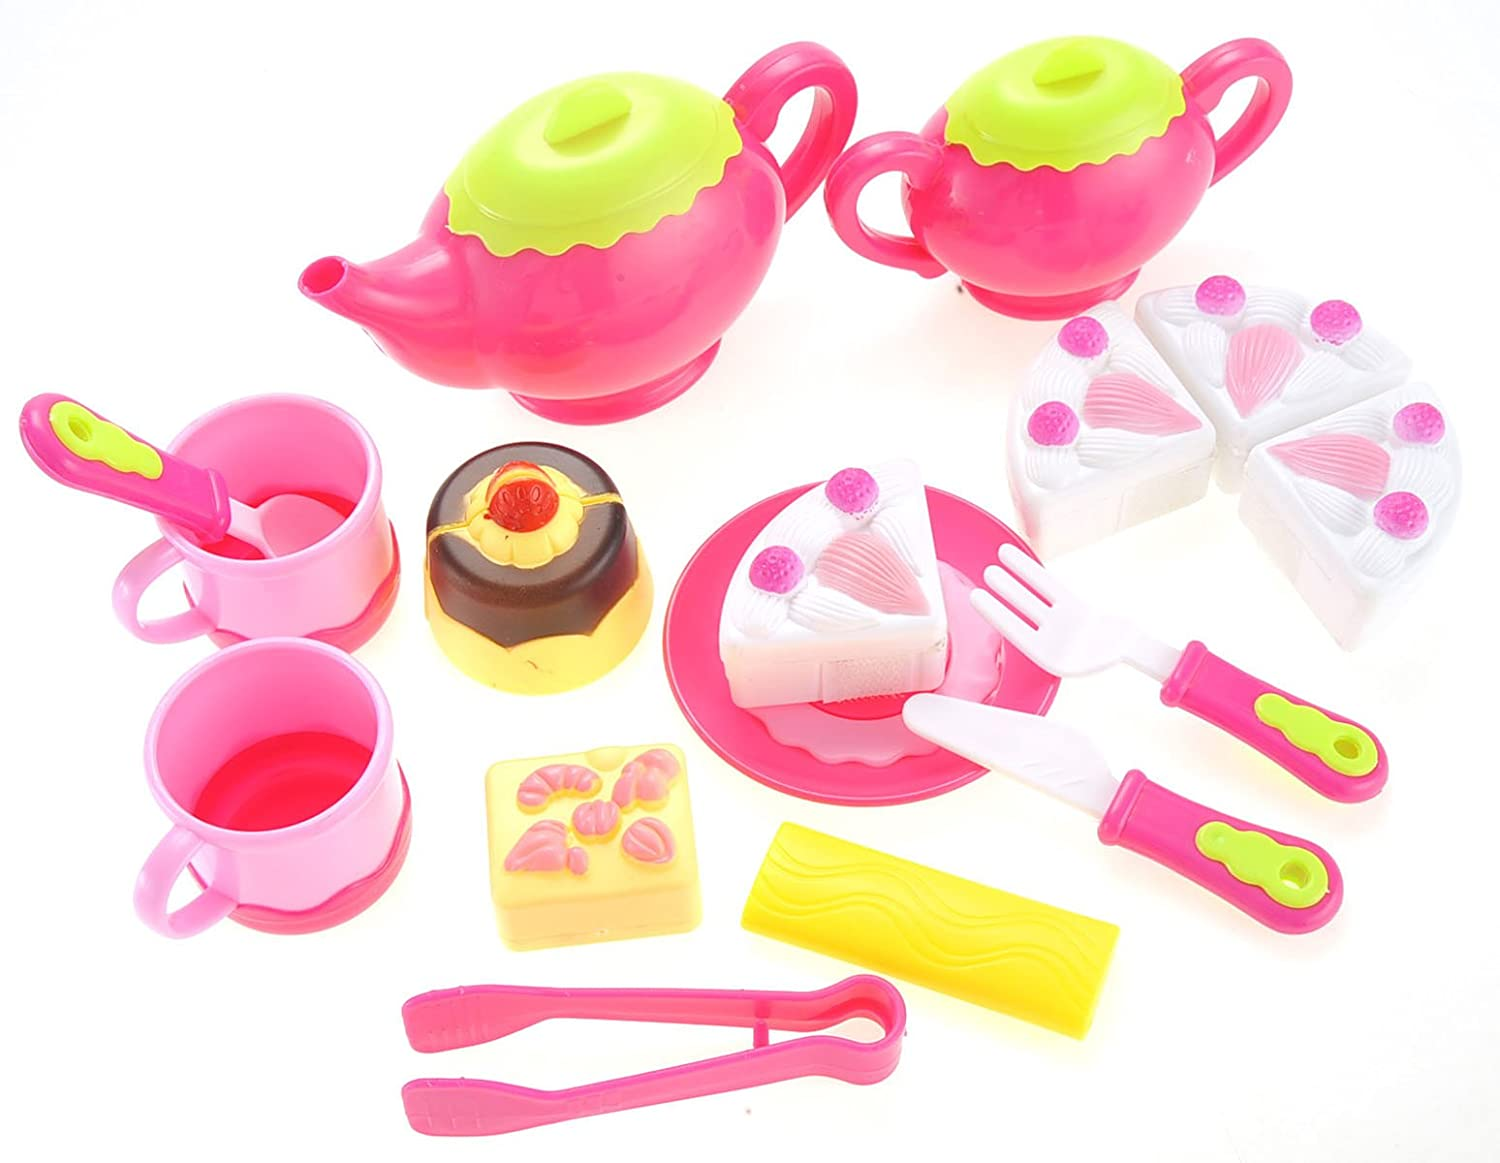 Pink Teapot Play Kitchen Accessories Gift for Kids Cuttable Play Cake PowerTRC Pretend Tea and Dessert Play Set Toy Plates and Utensils